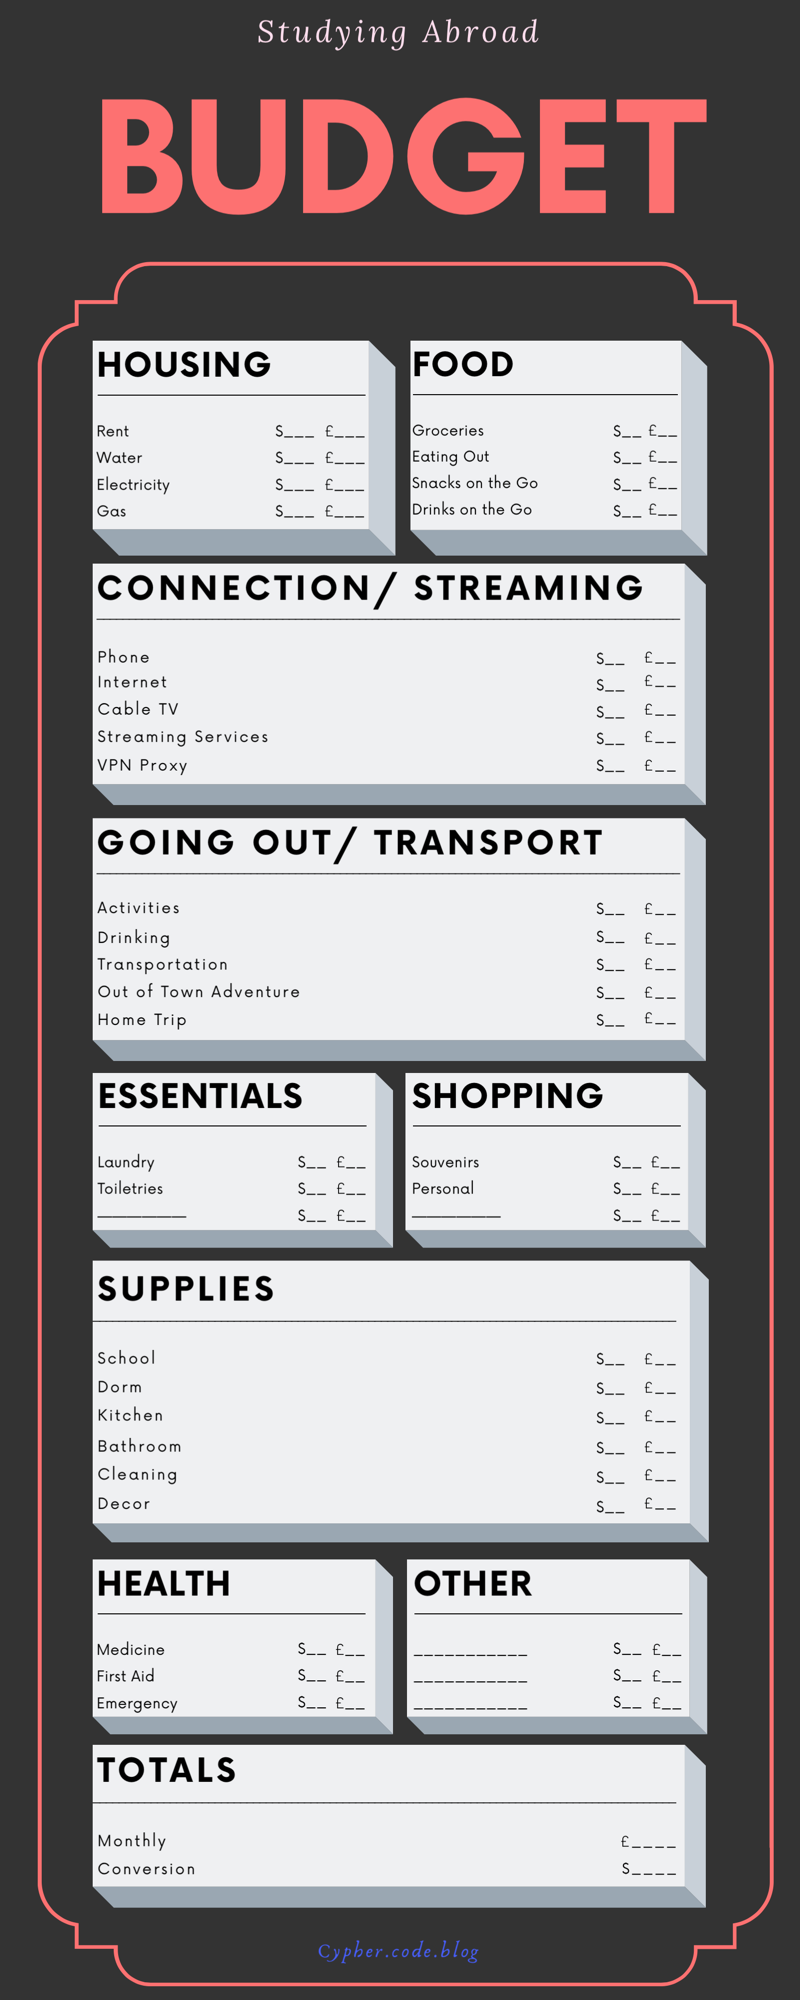 Printable Study Abroad Budget Planner Budgeting While